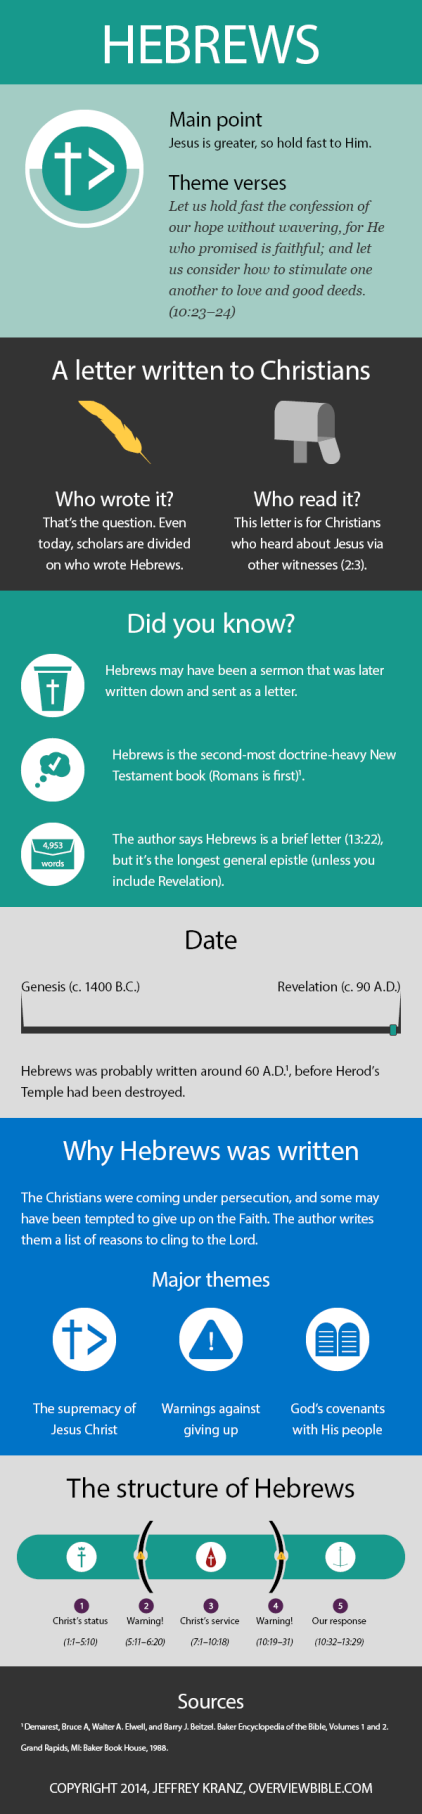 Hebrews infographic